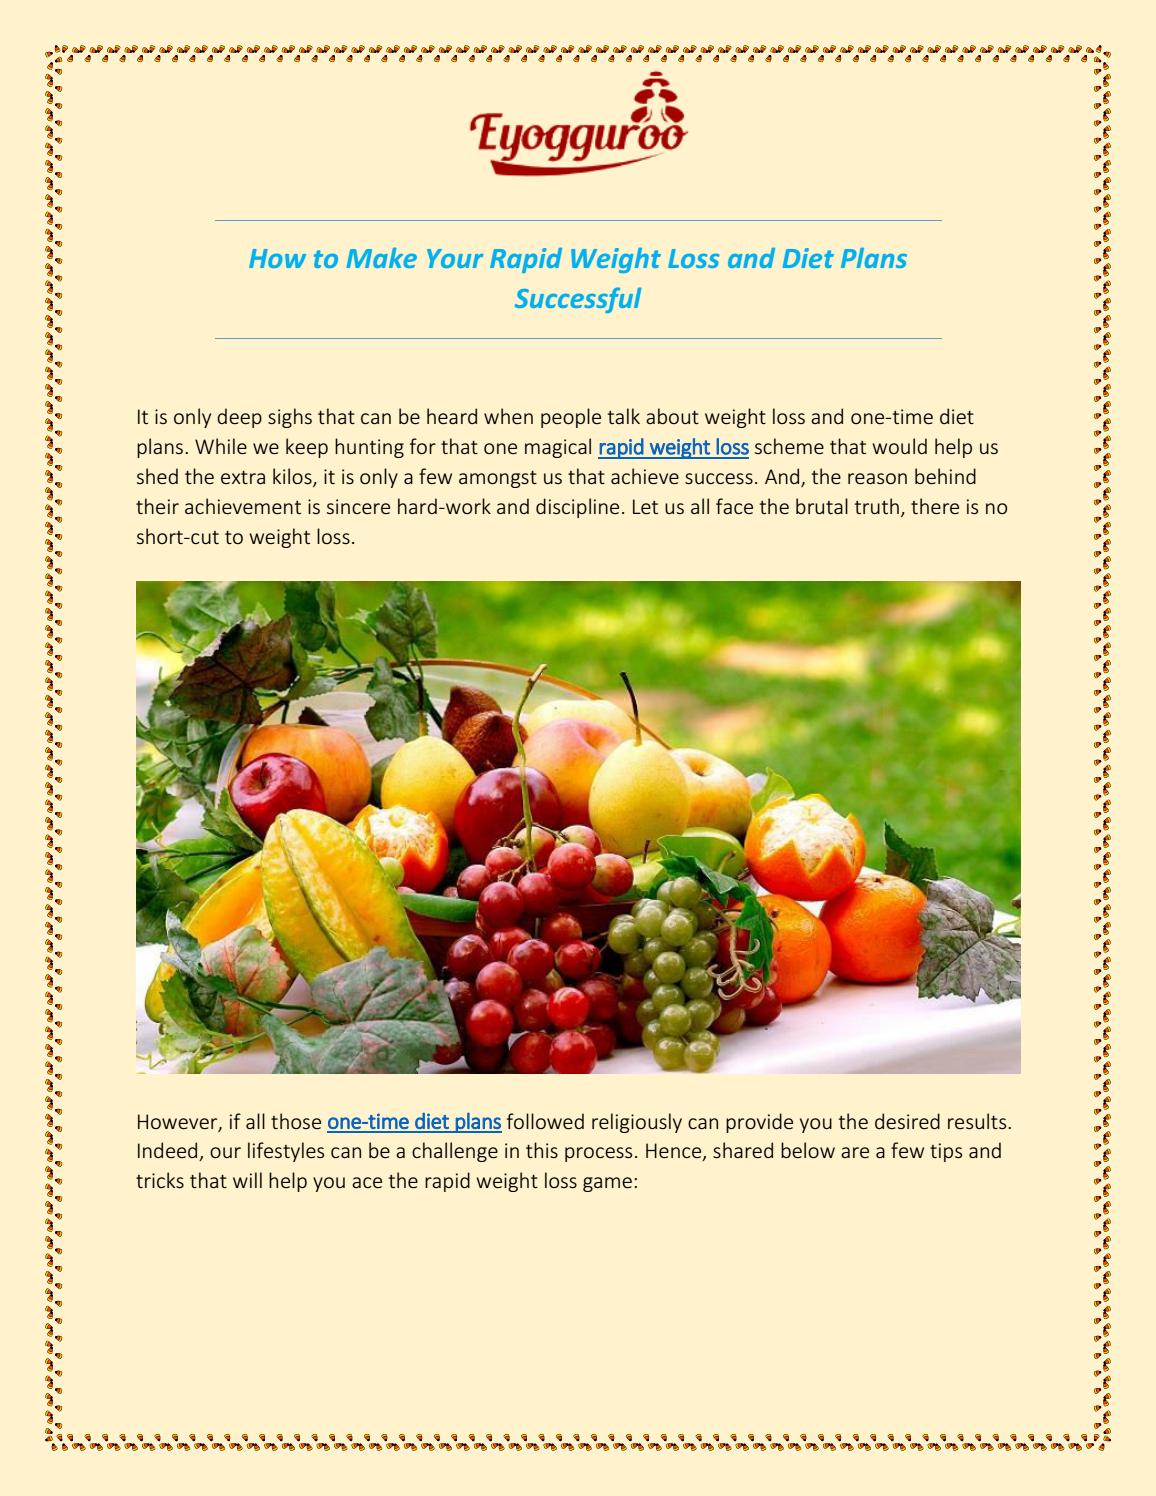 how to make a successful diet plan